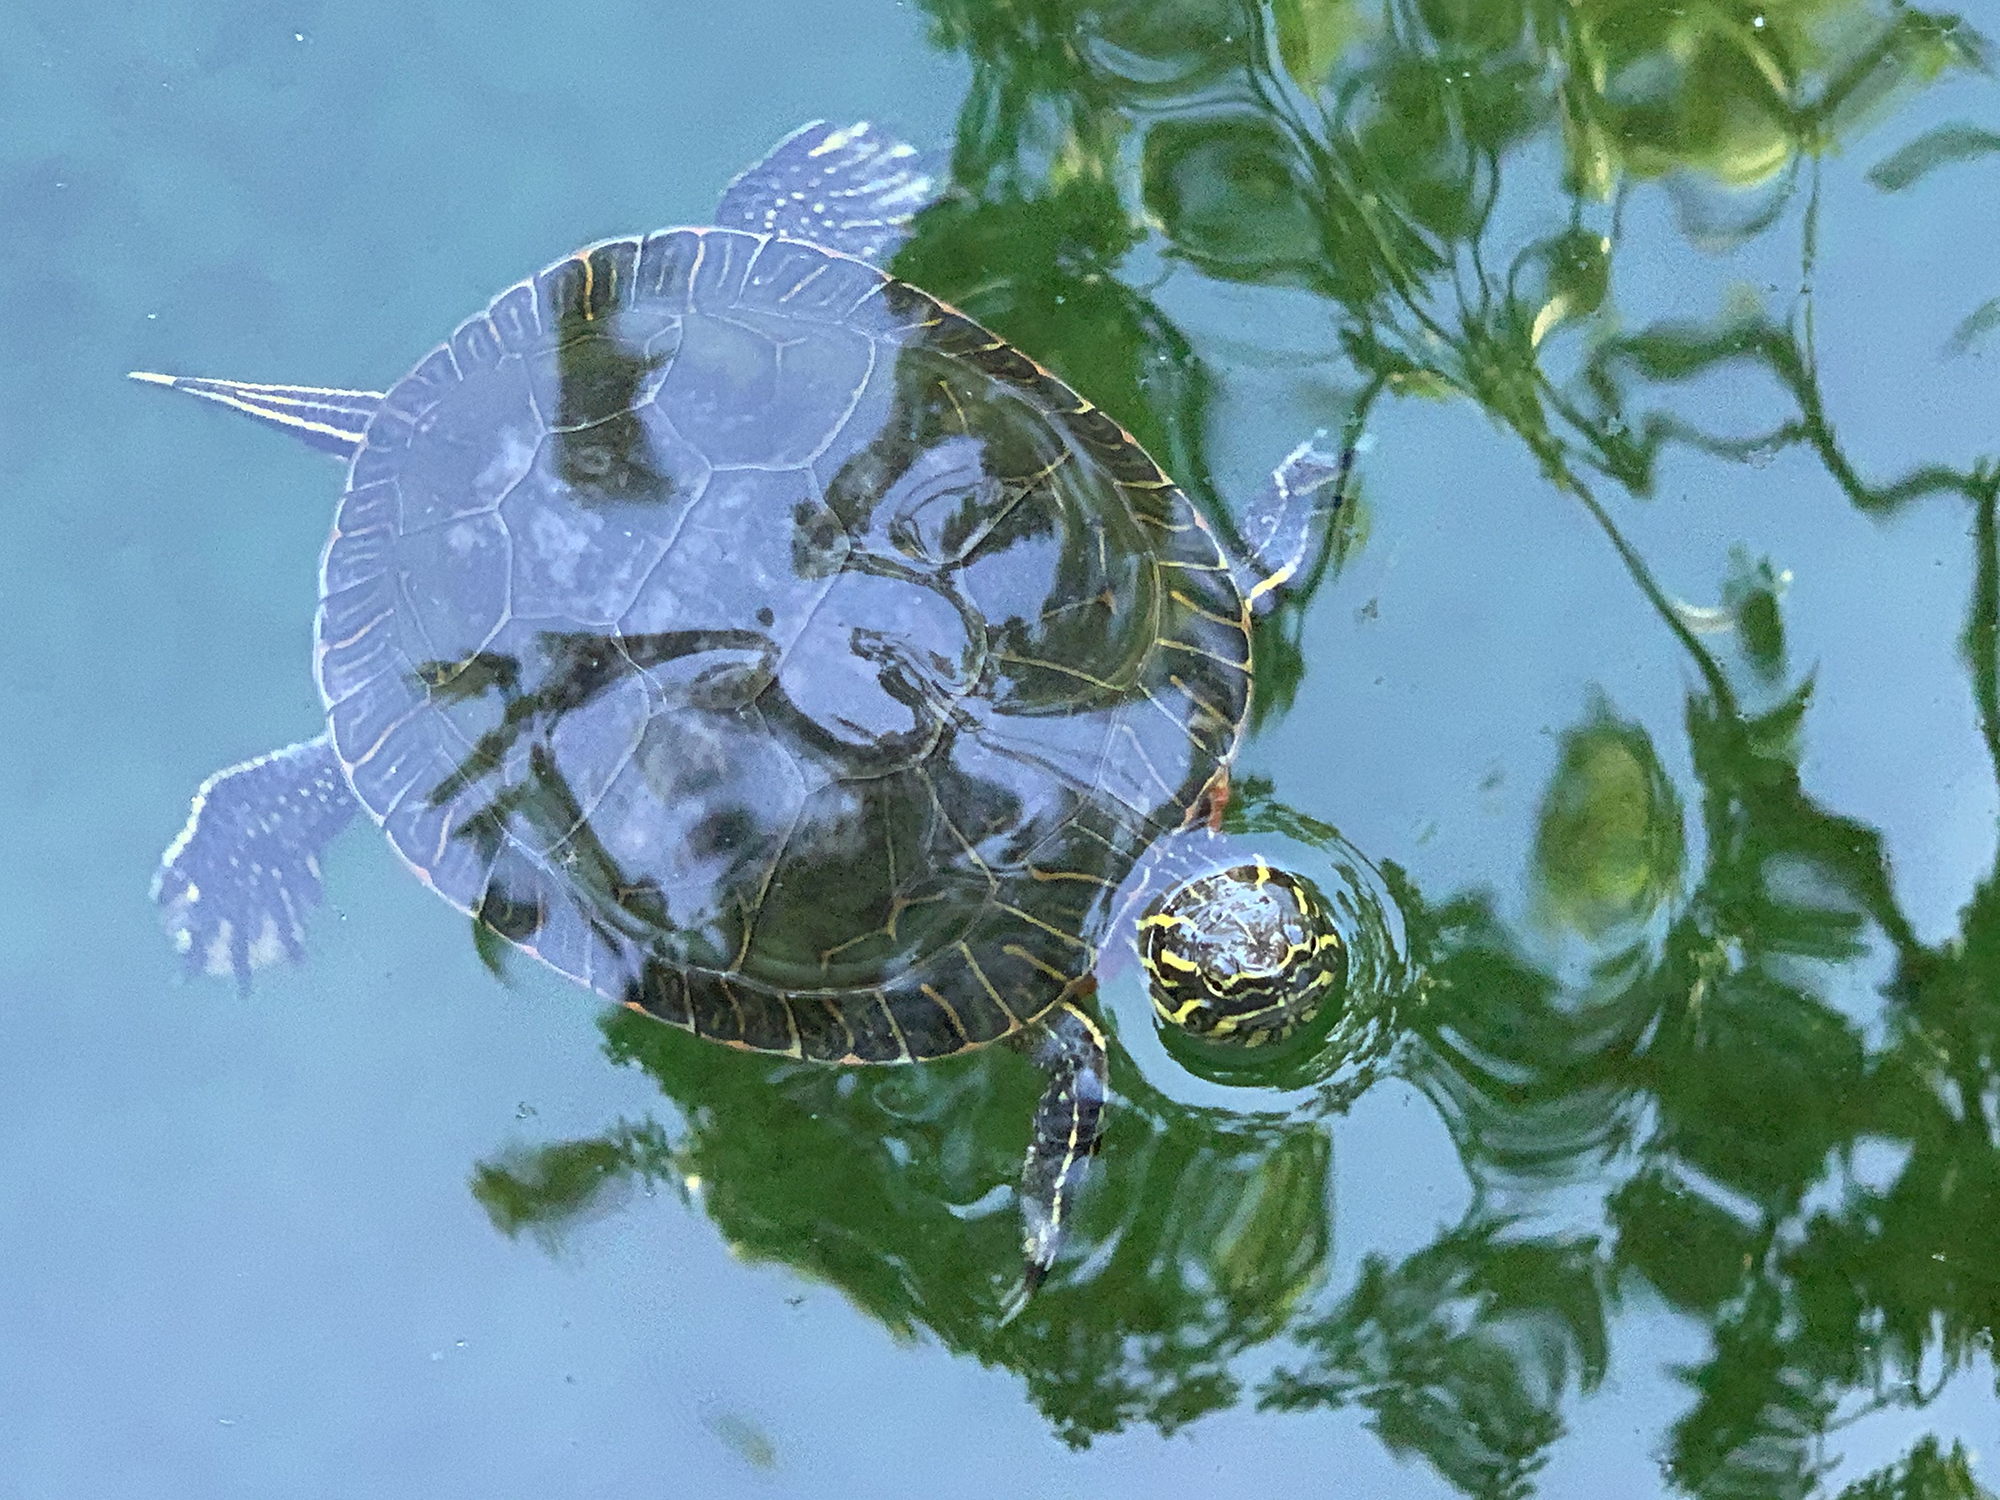 Award of Excellence. Kelly DAmbrosia, Turtle Reflections